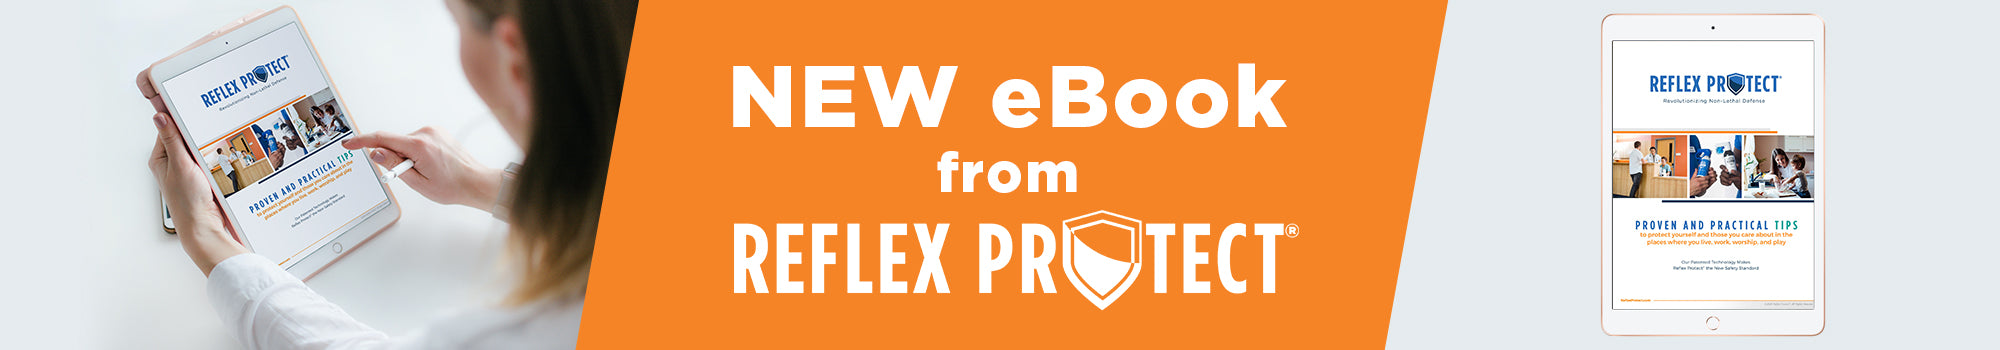 Reflex Protect Ebook